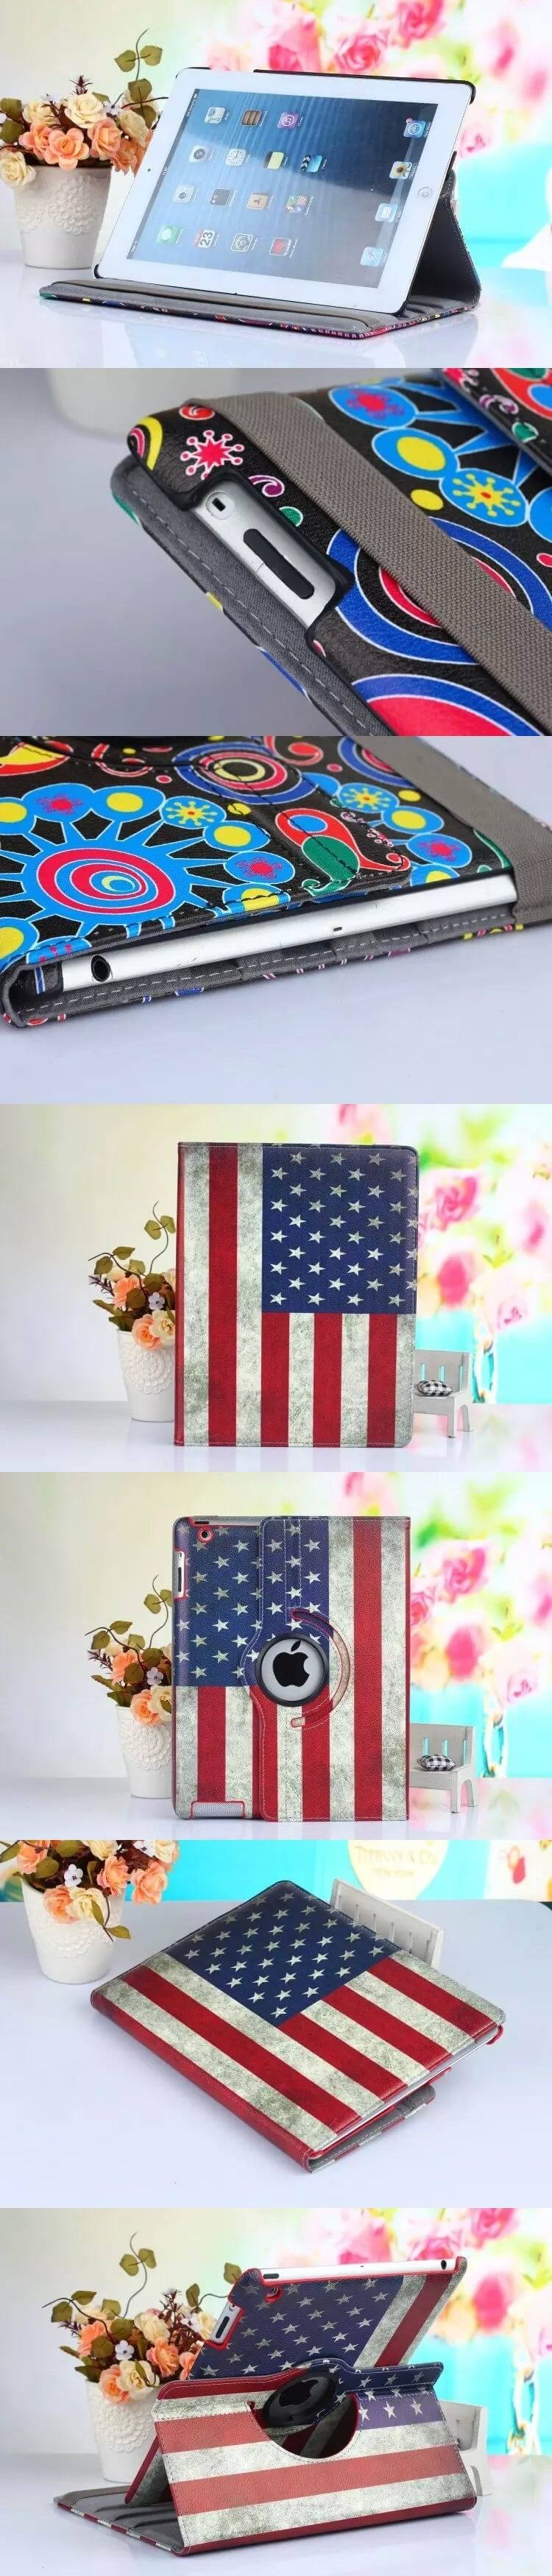 ipad air 2 case with bright pictures rotating 360 degrees stand and plastic body